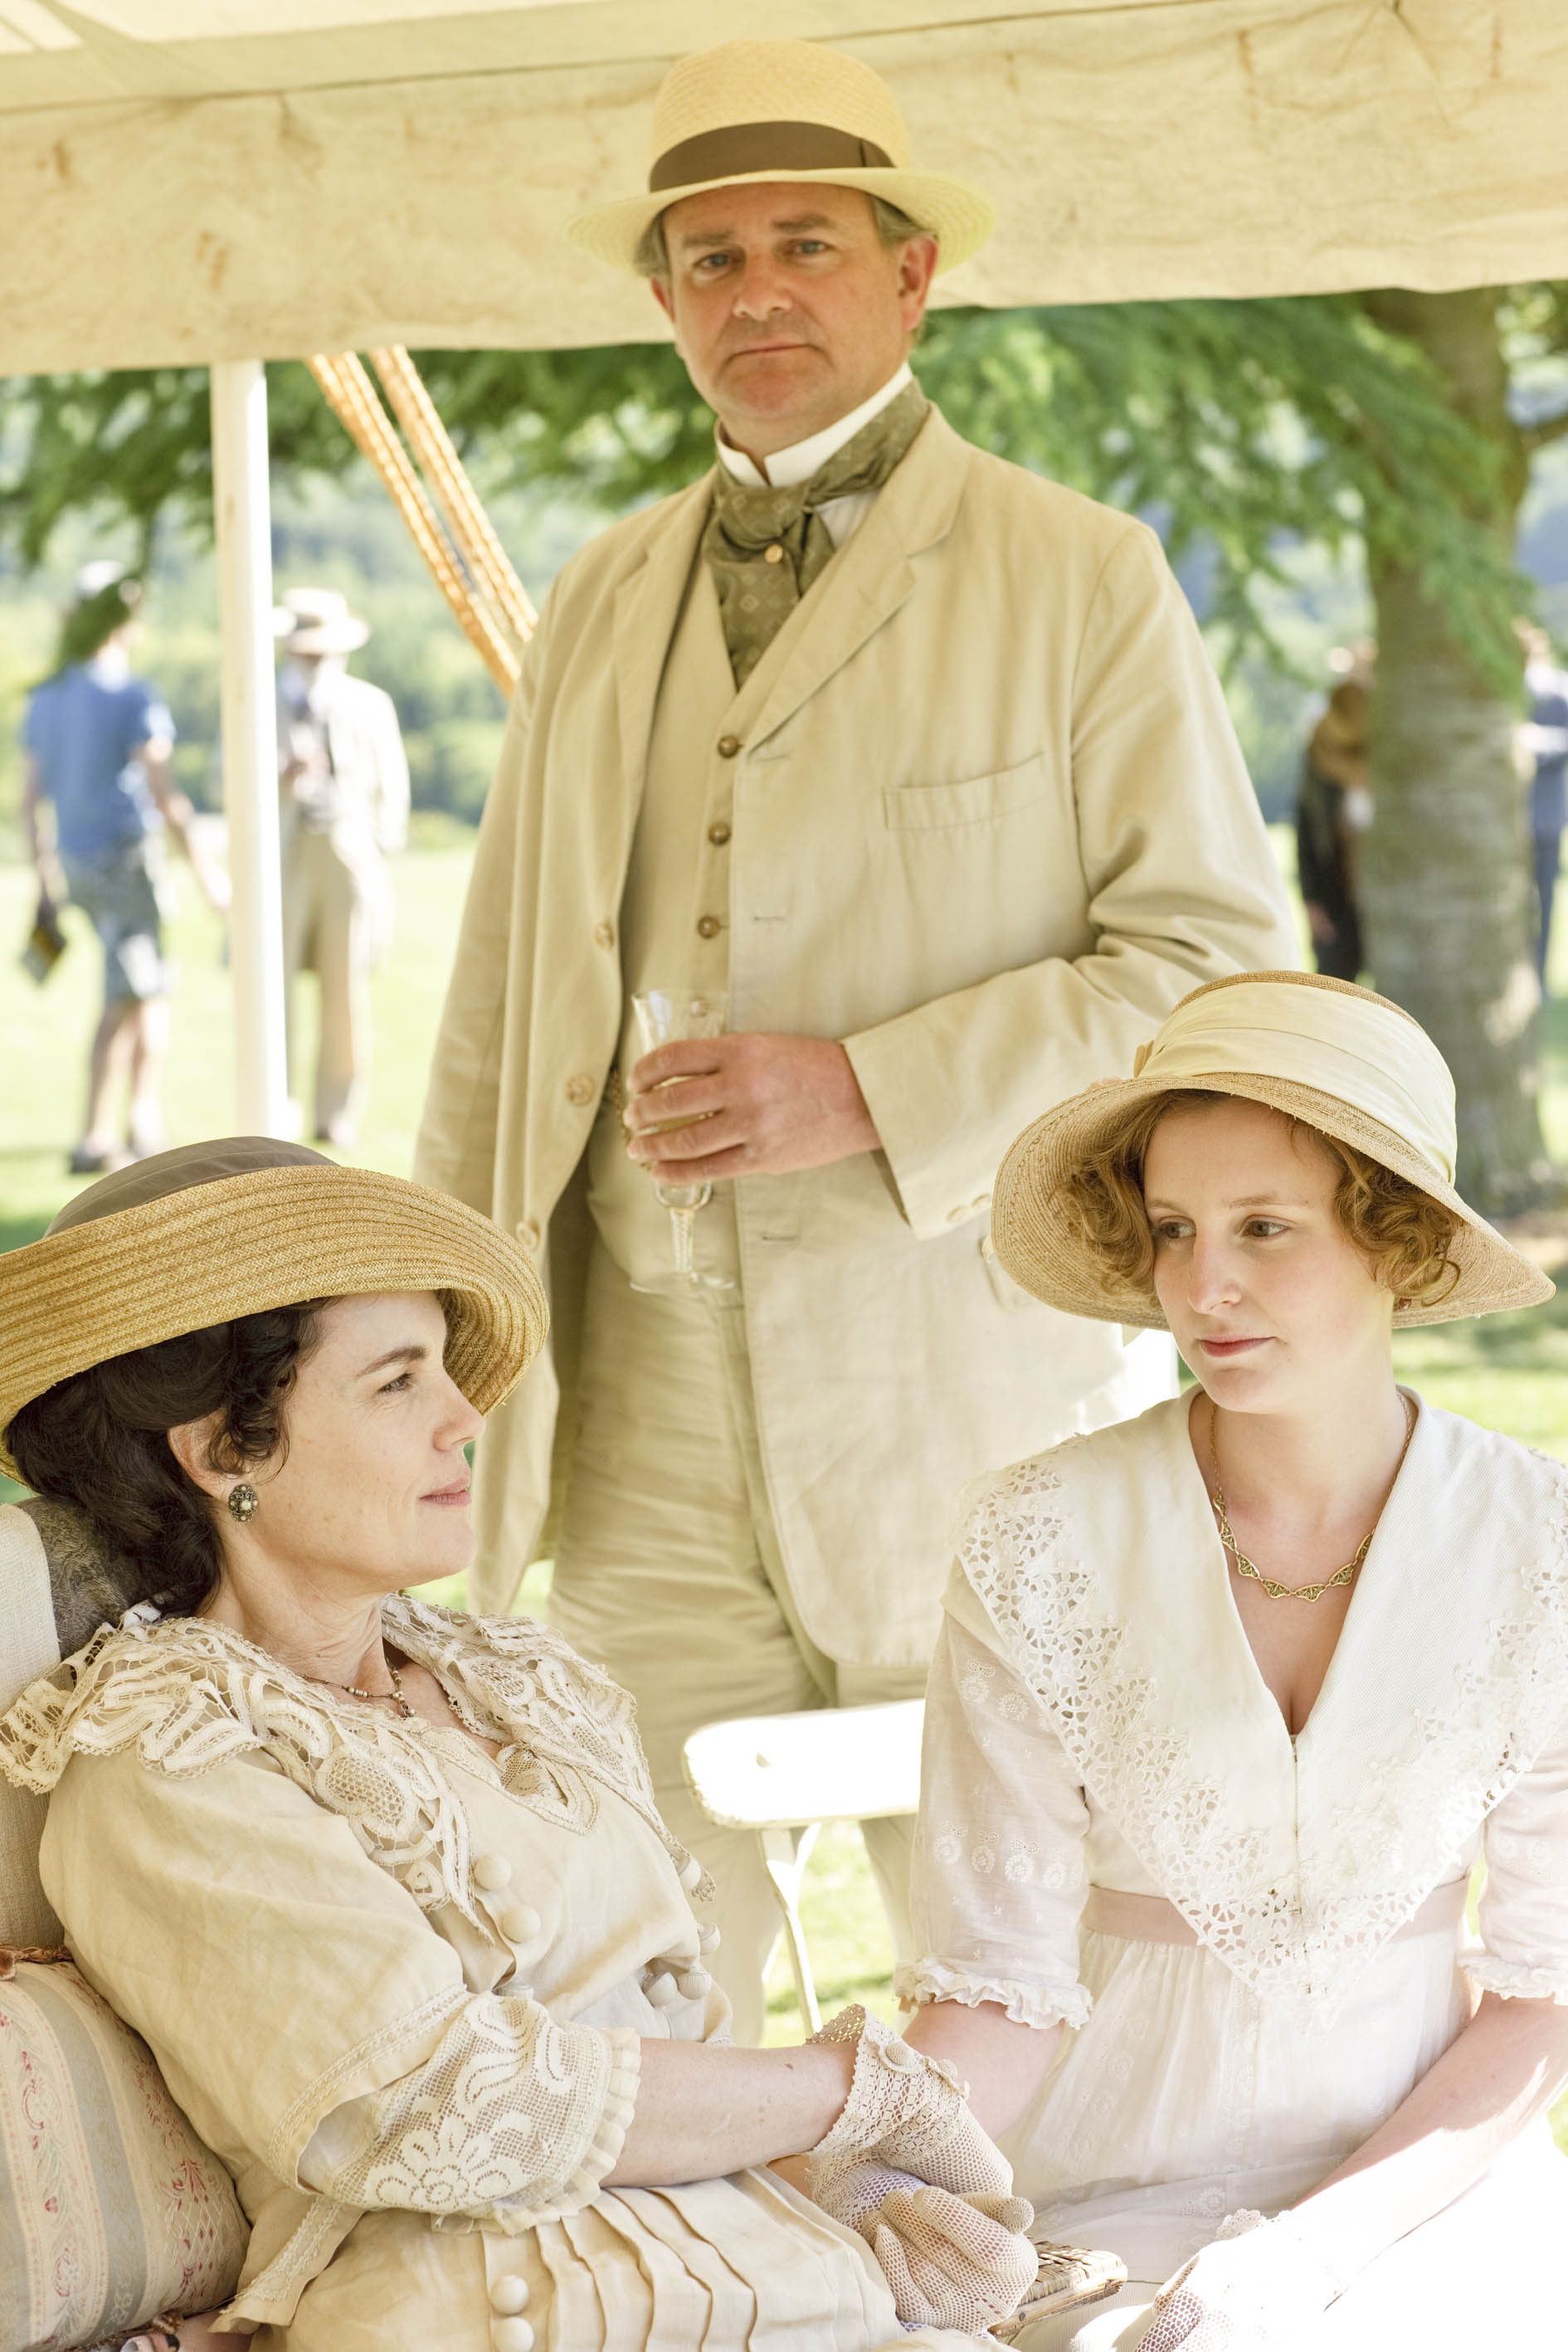 Julian Fellowes is 64.5% sure he'll be penning a Downton Abbey movie